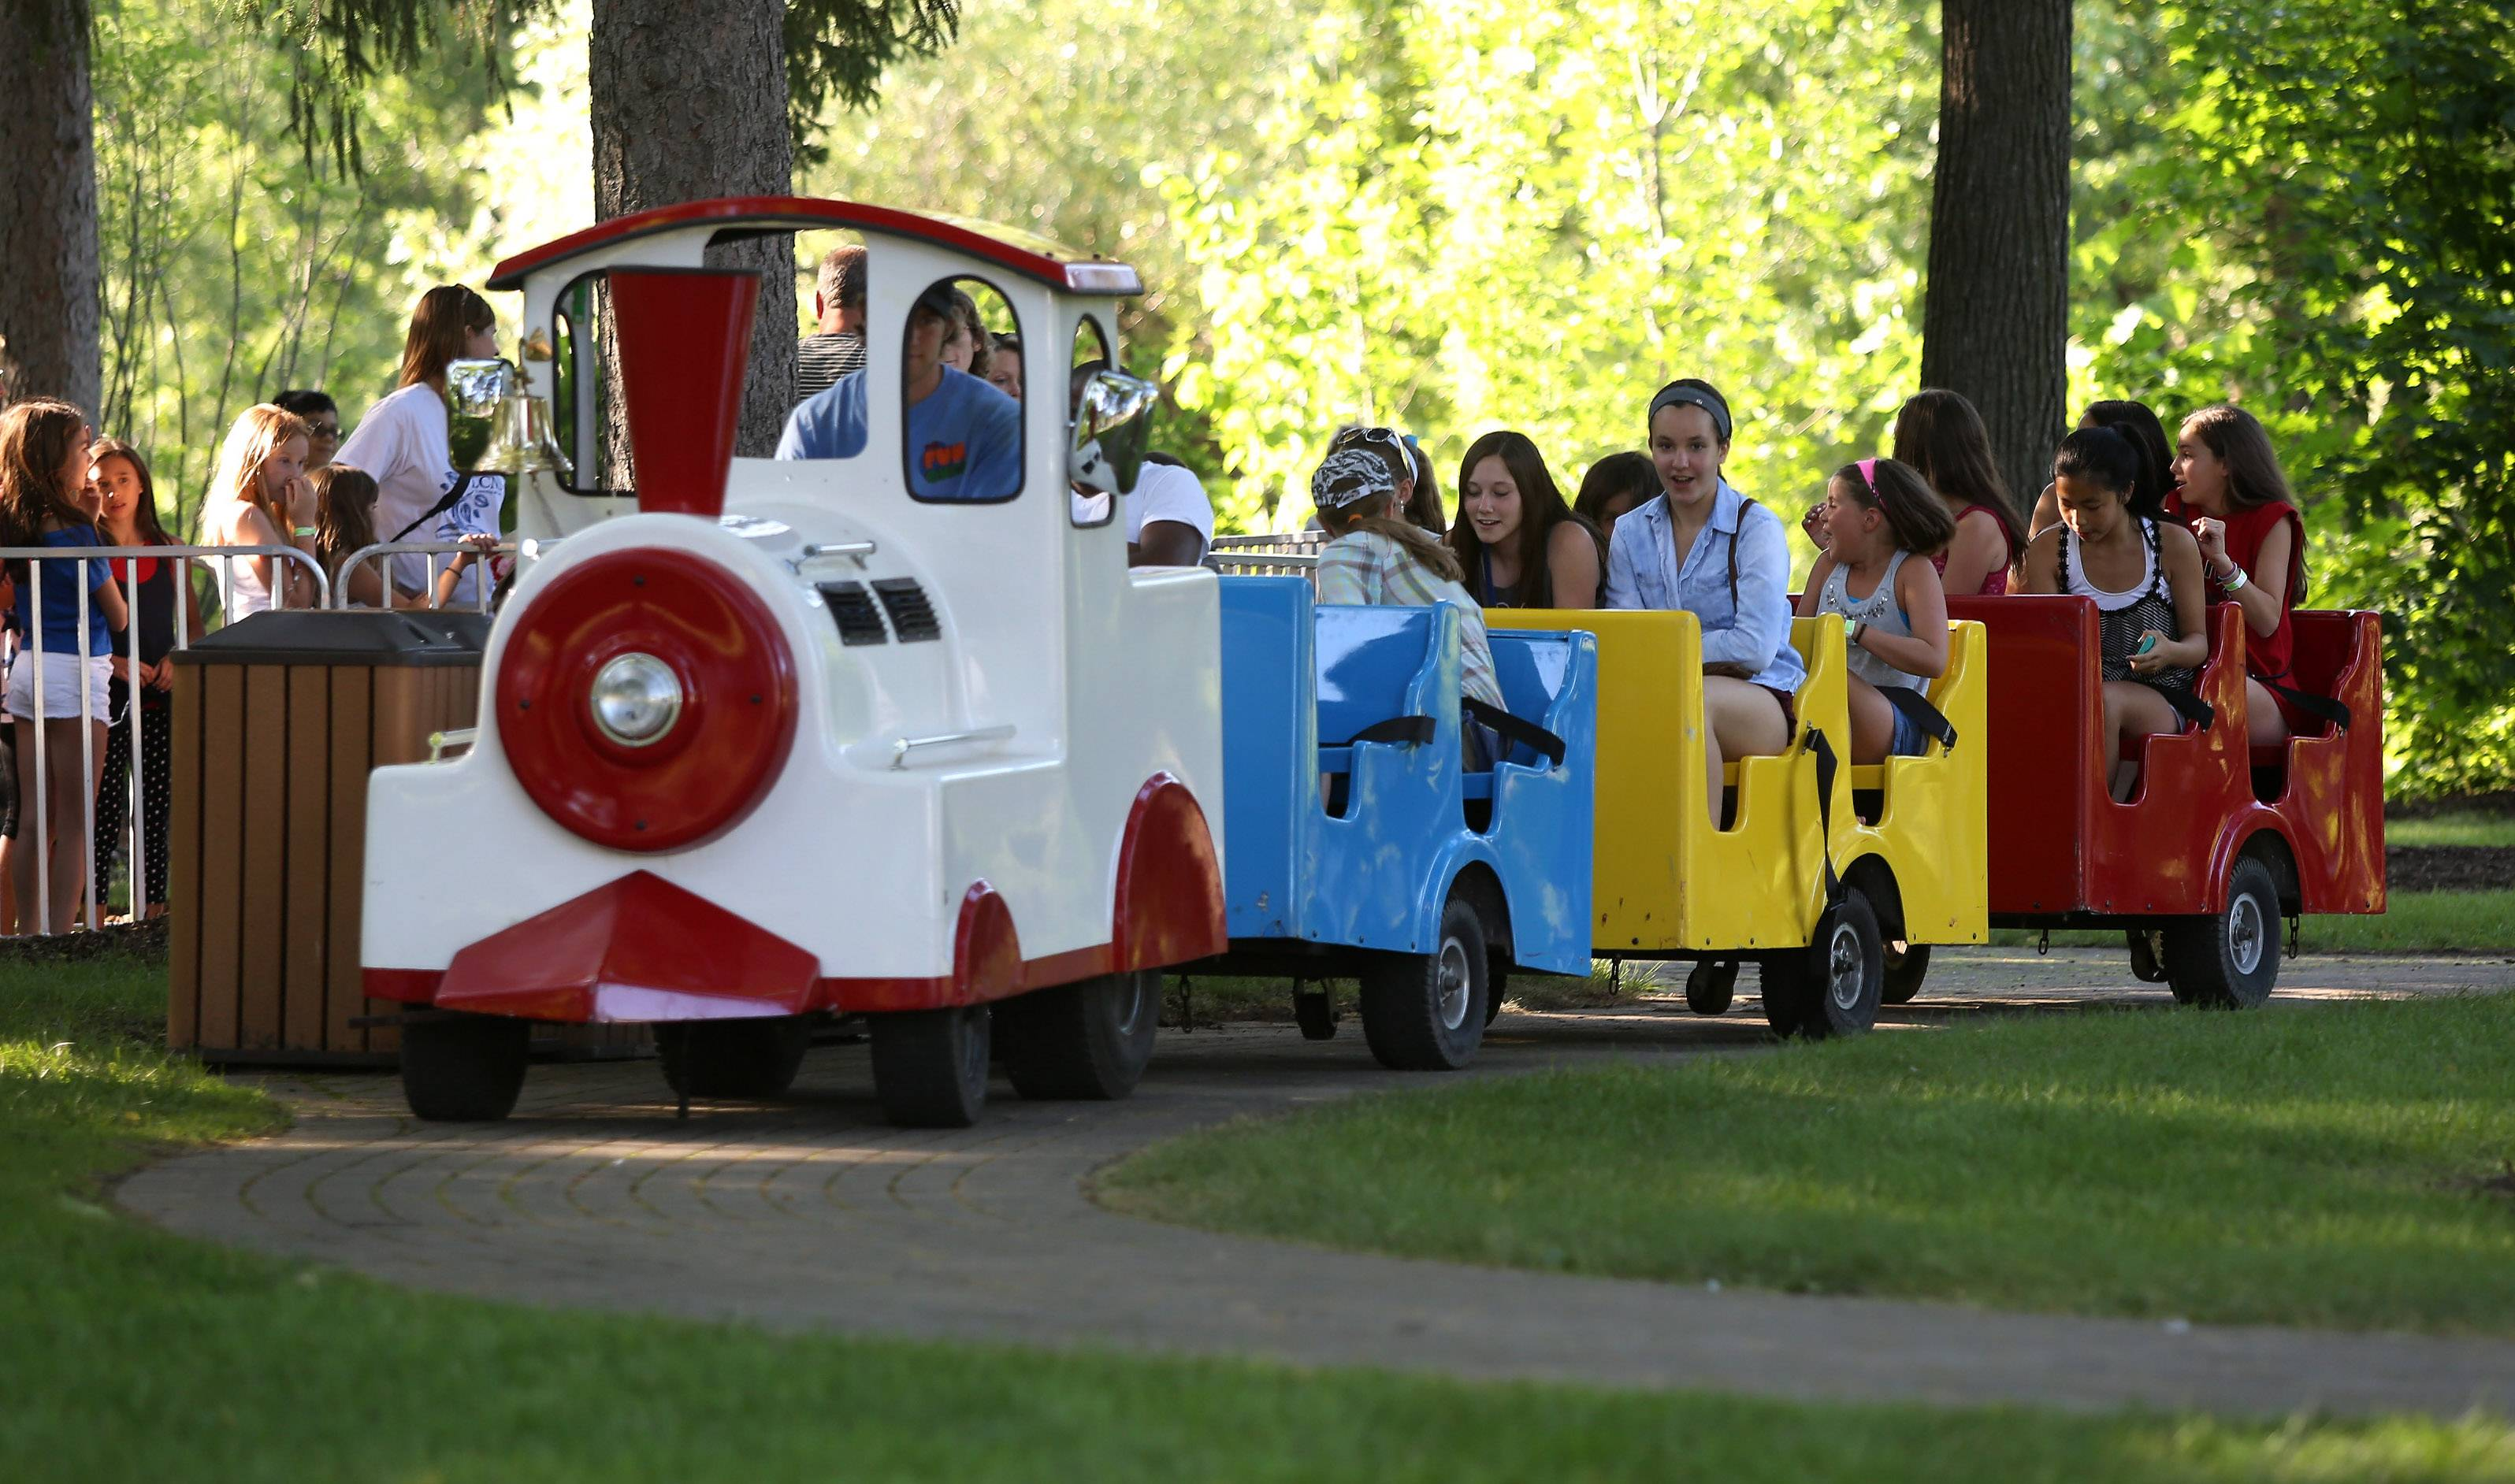 Engineer Jason Fekety drives the Choo Choo Express loaded with children and families during the first day of Lincolnshire's Red, White & Boom celebration Thursday at Spring Lake Park.